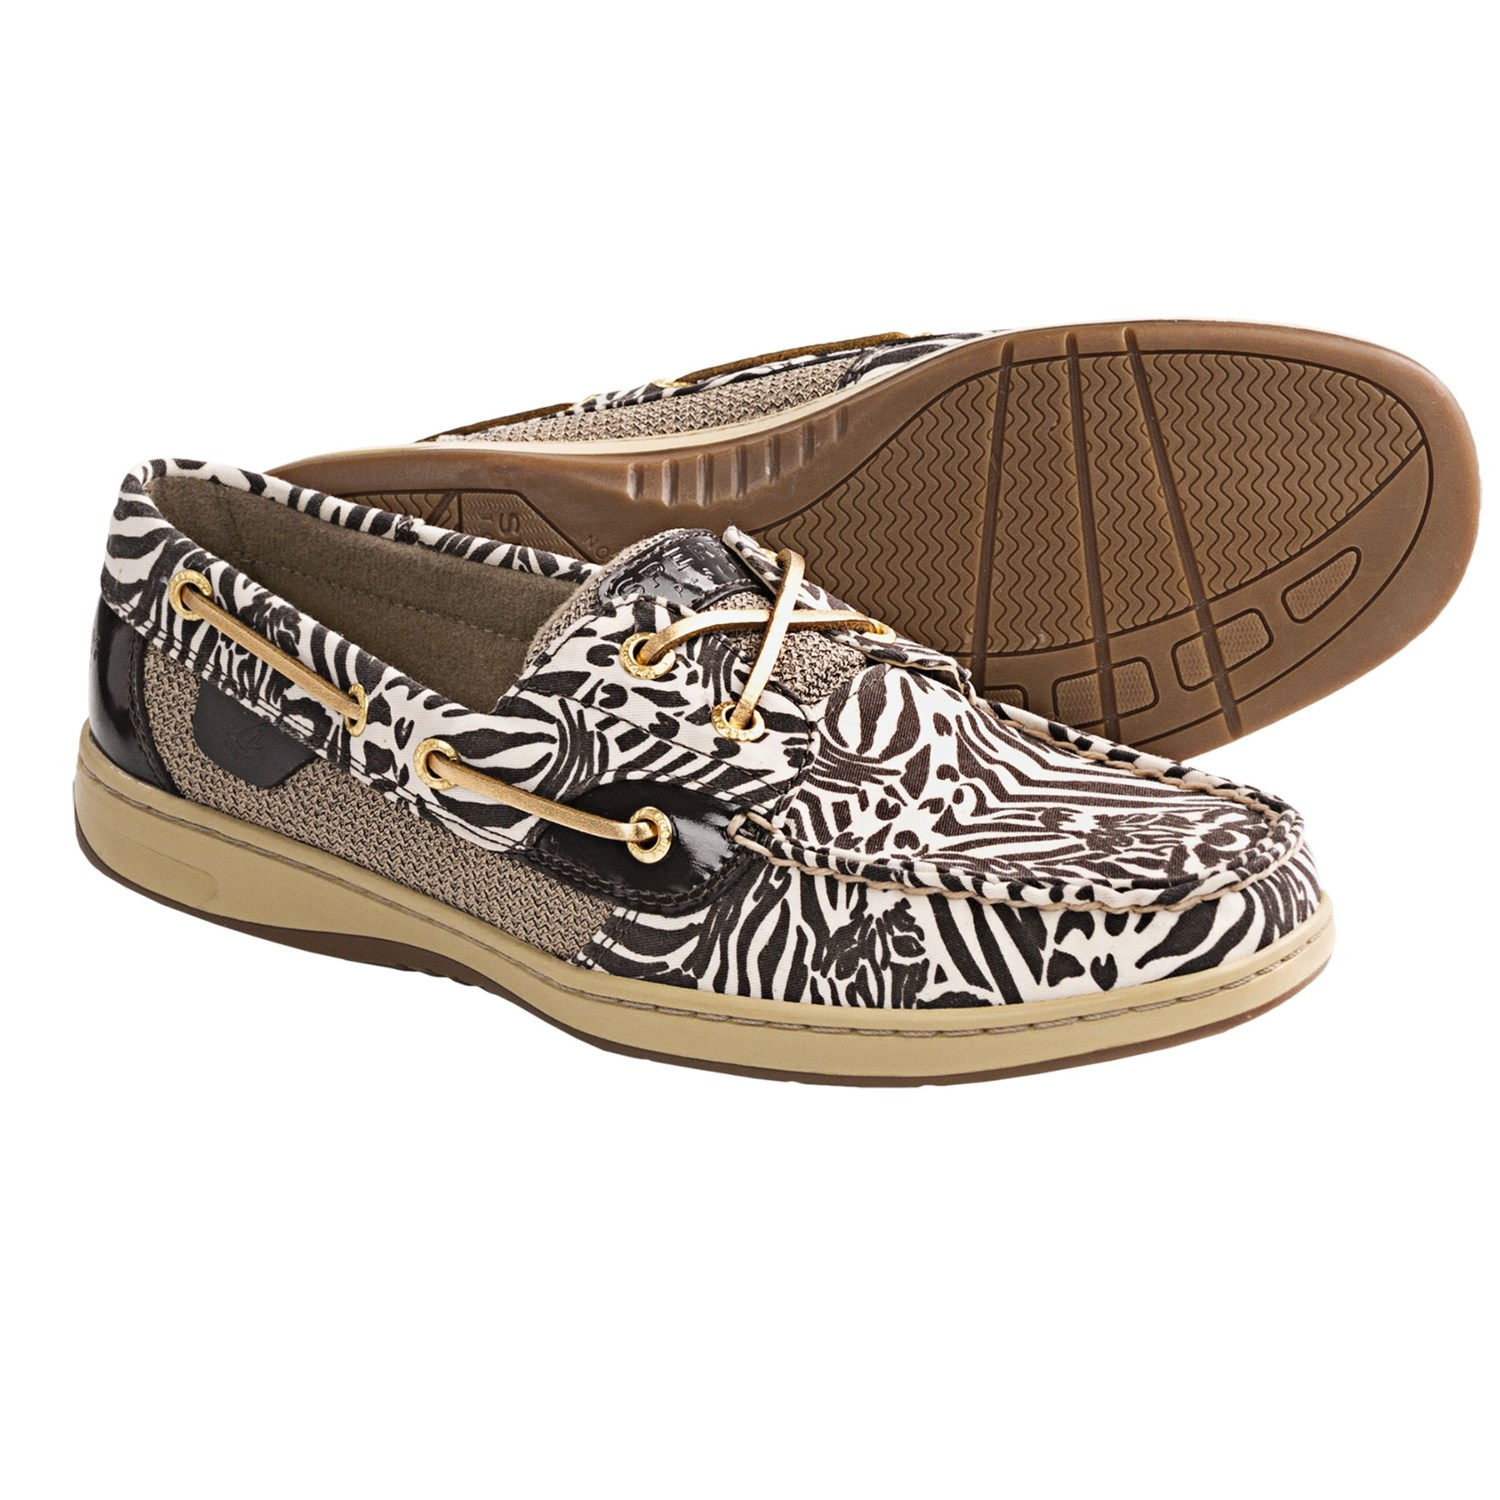 Sperry Top-Sider Bluefish Boat Shoes (For Women) in Dark Brown Zebra